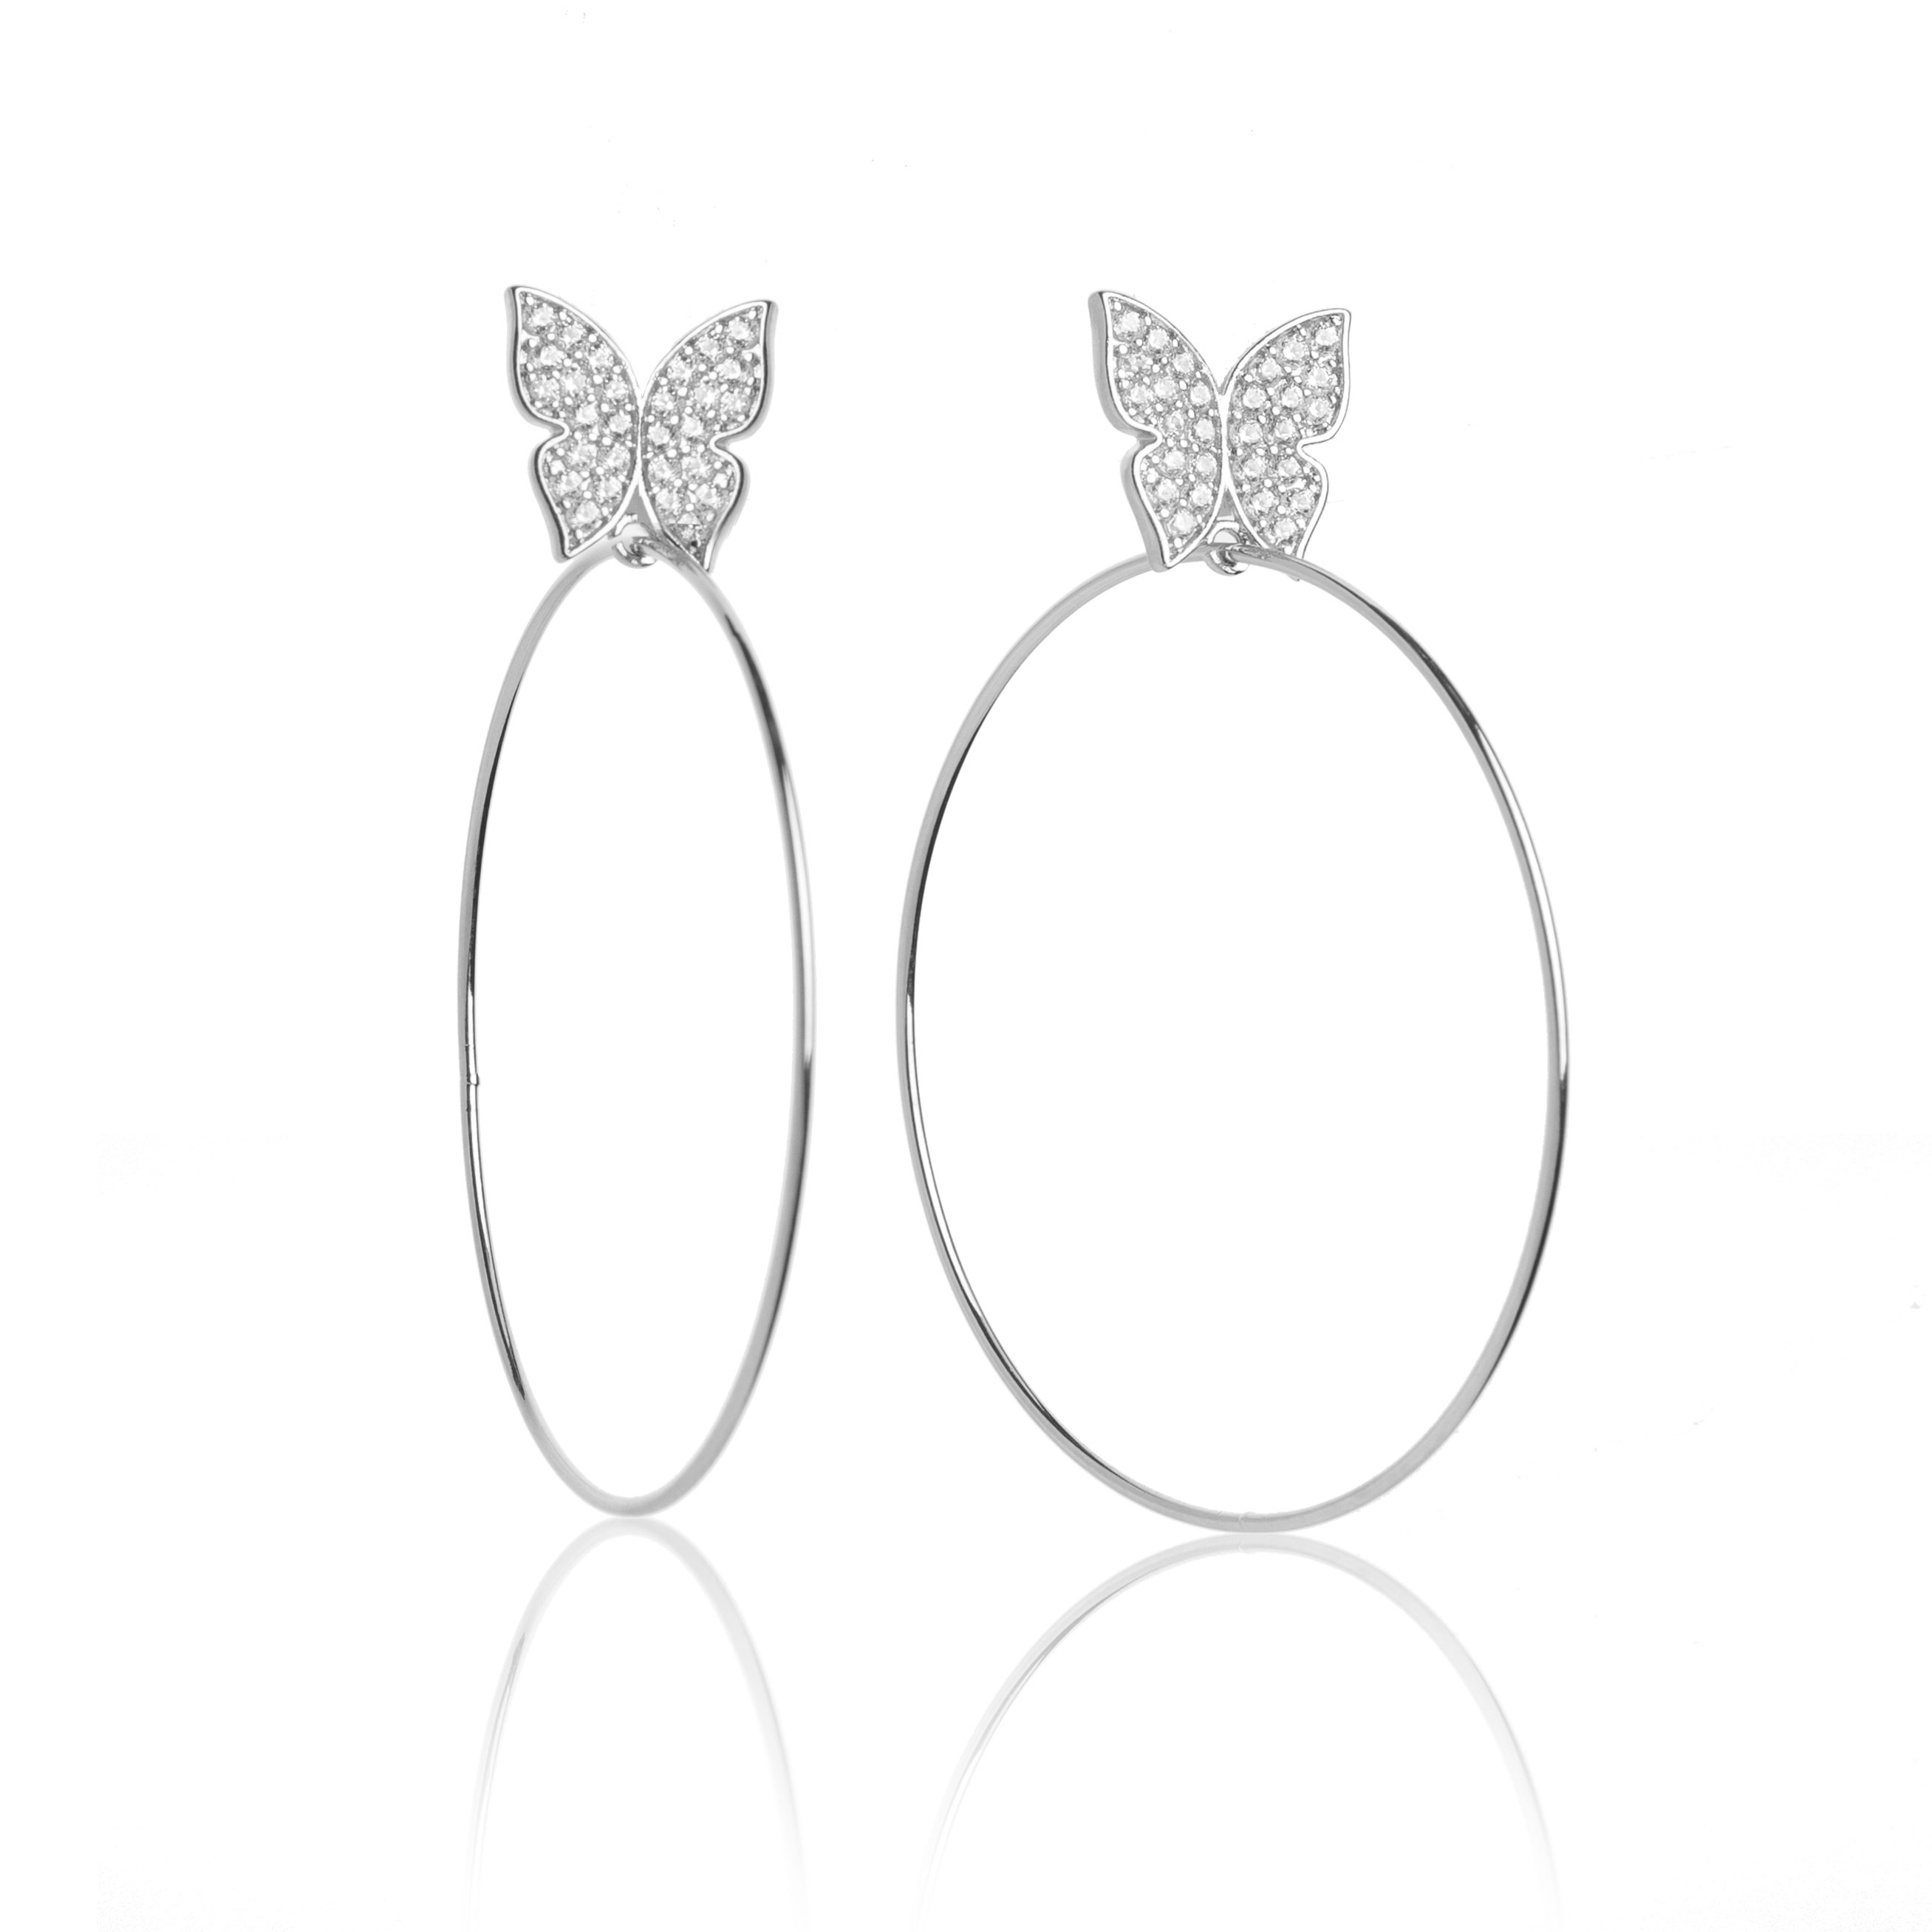 Evelyn Signature 2 White Gold Hoop Earrings